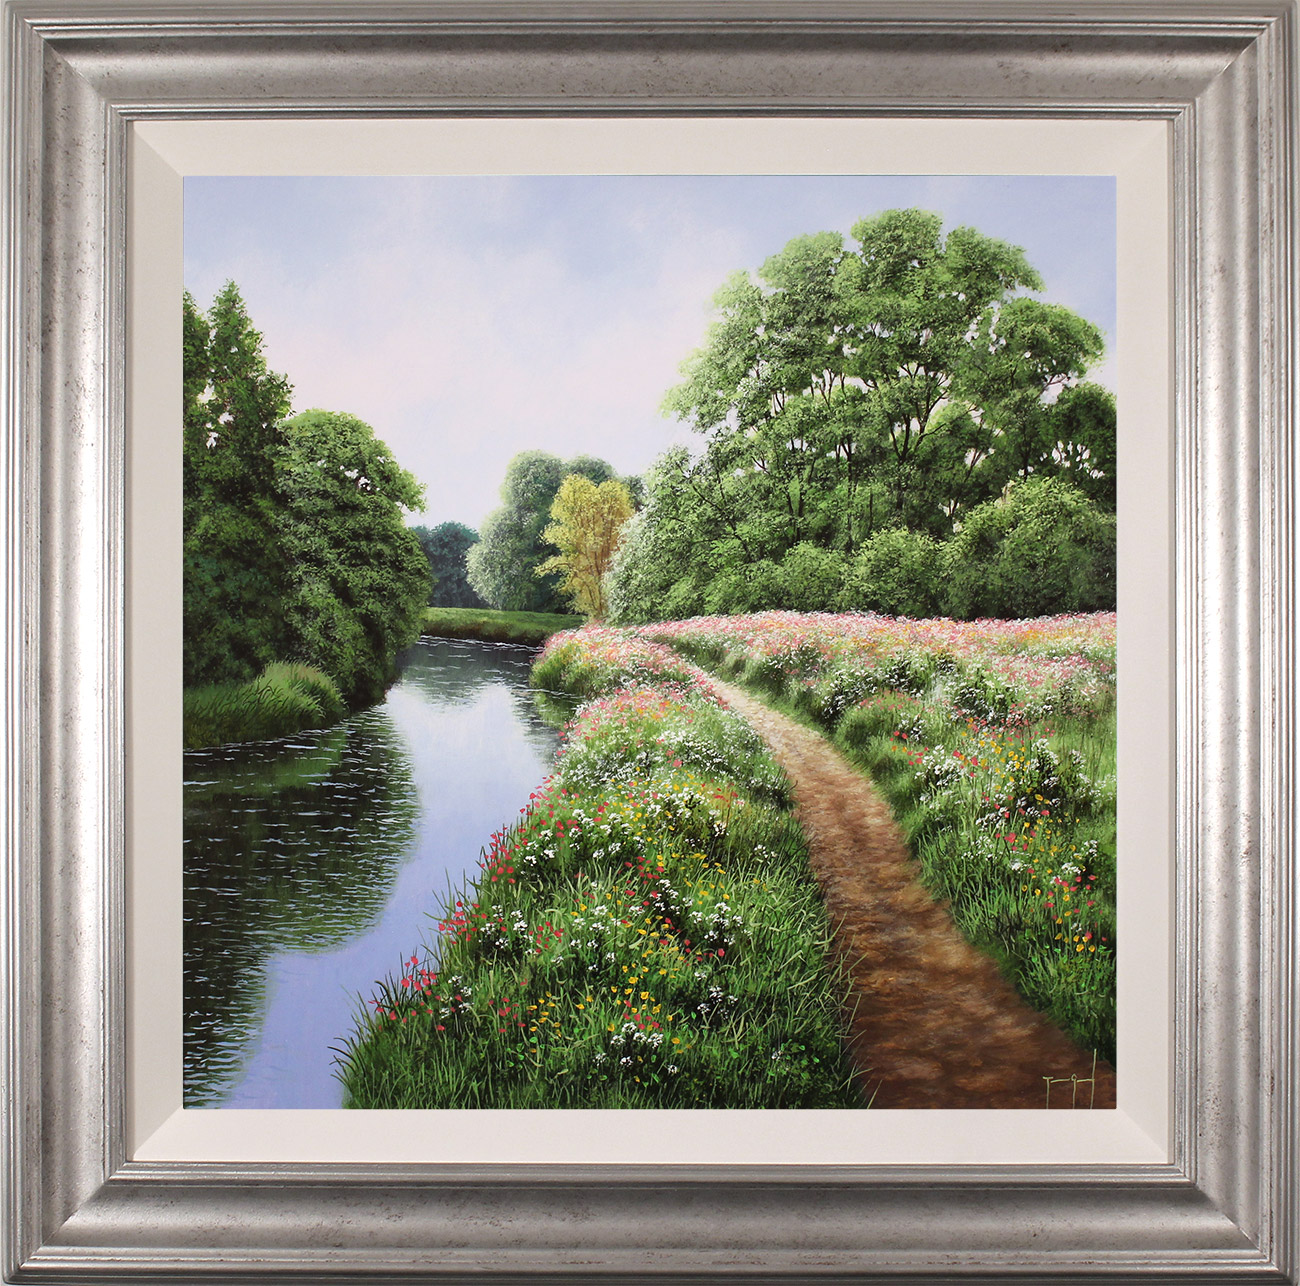 Terry Grundy, Original oil painting on panel, Tranquil Midsummer, Yorkshire Wolds, click to enlarge